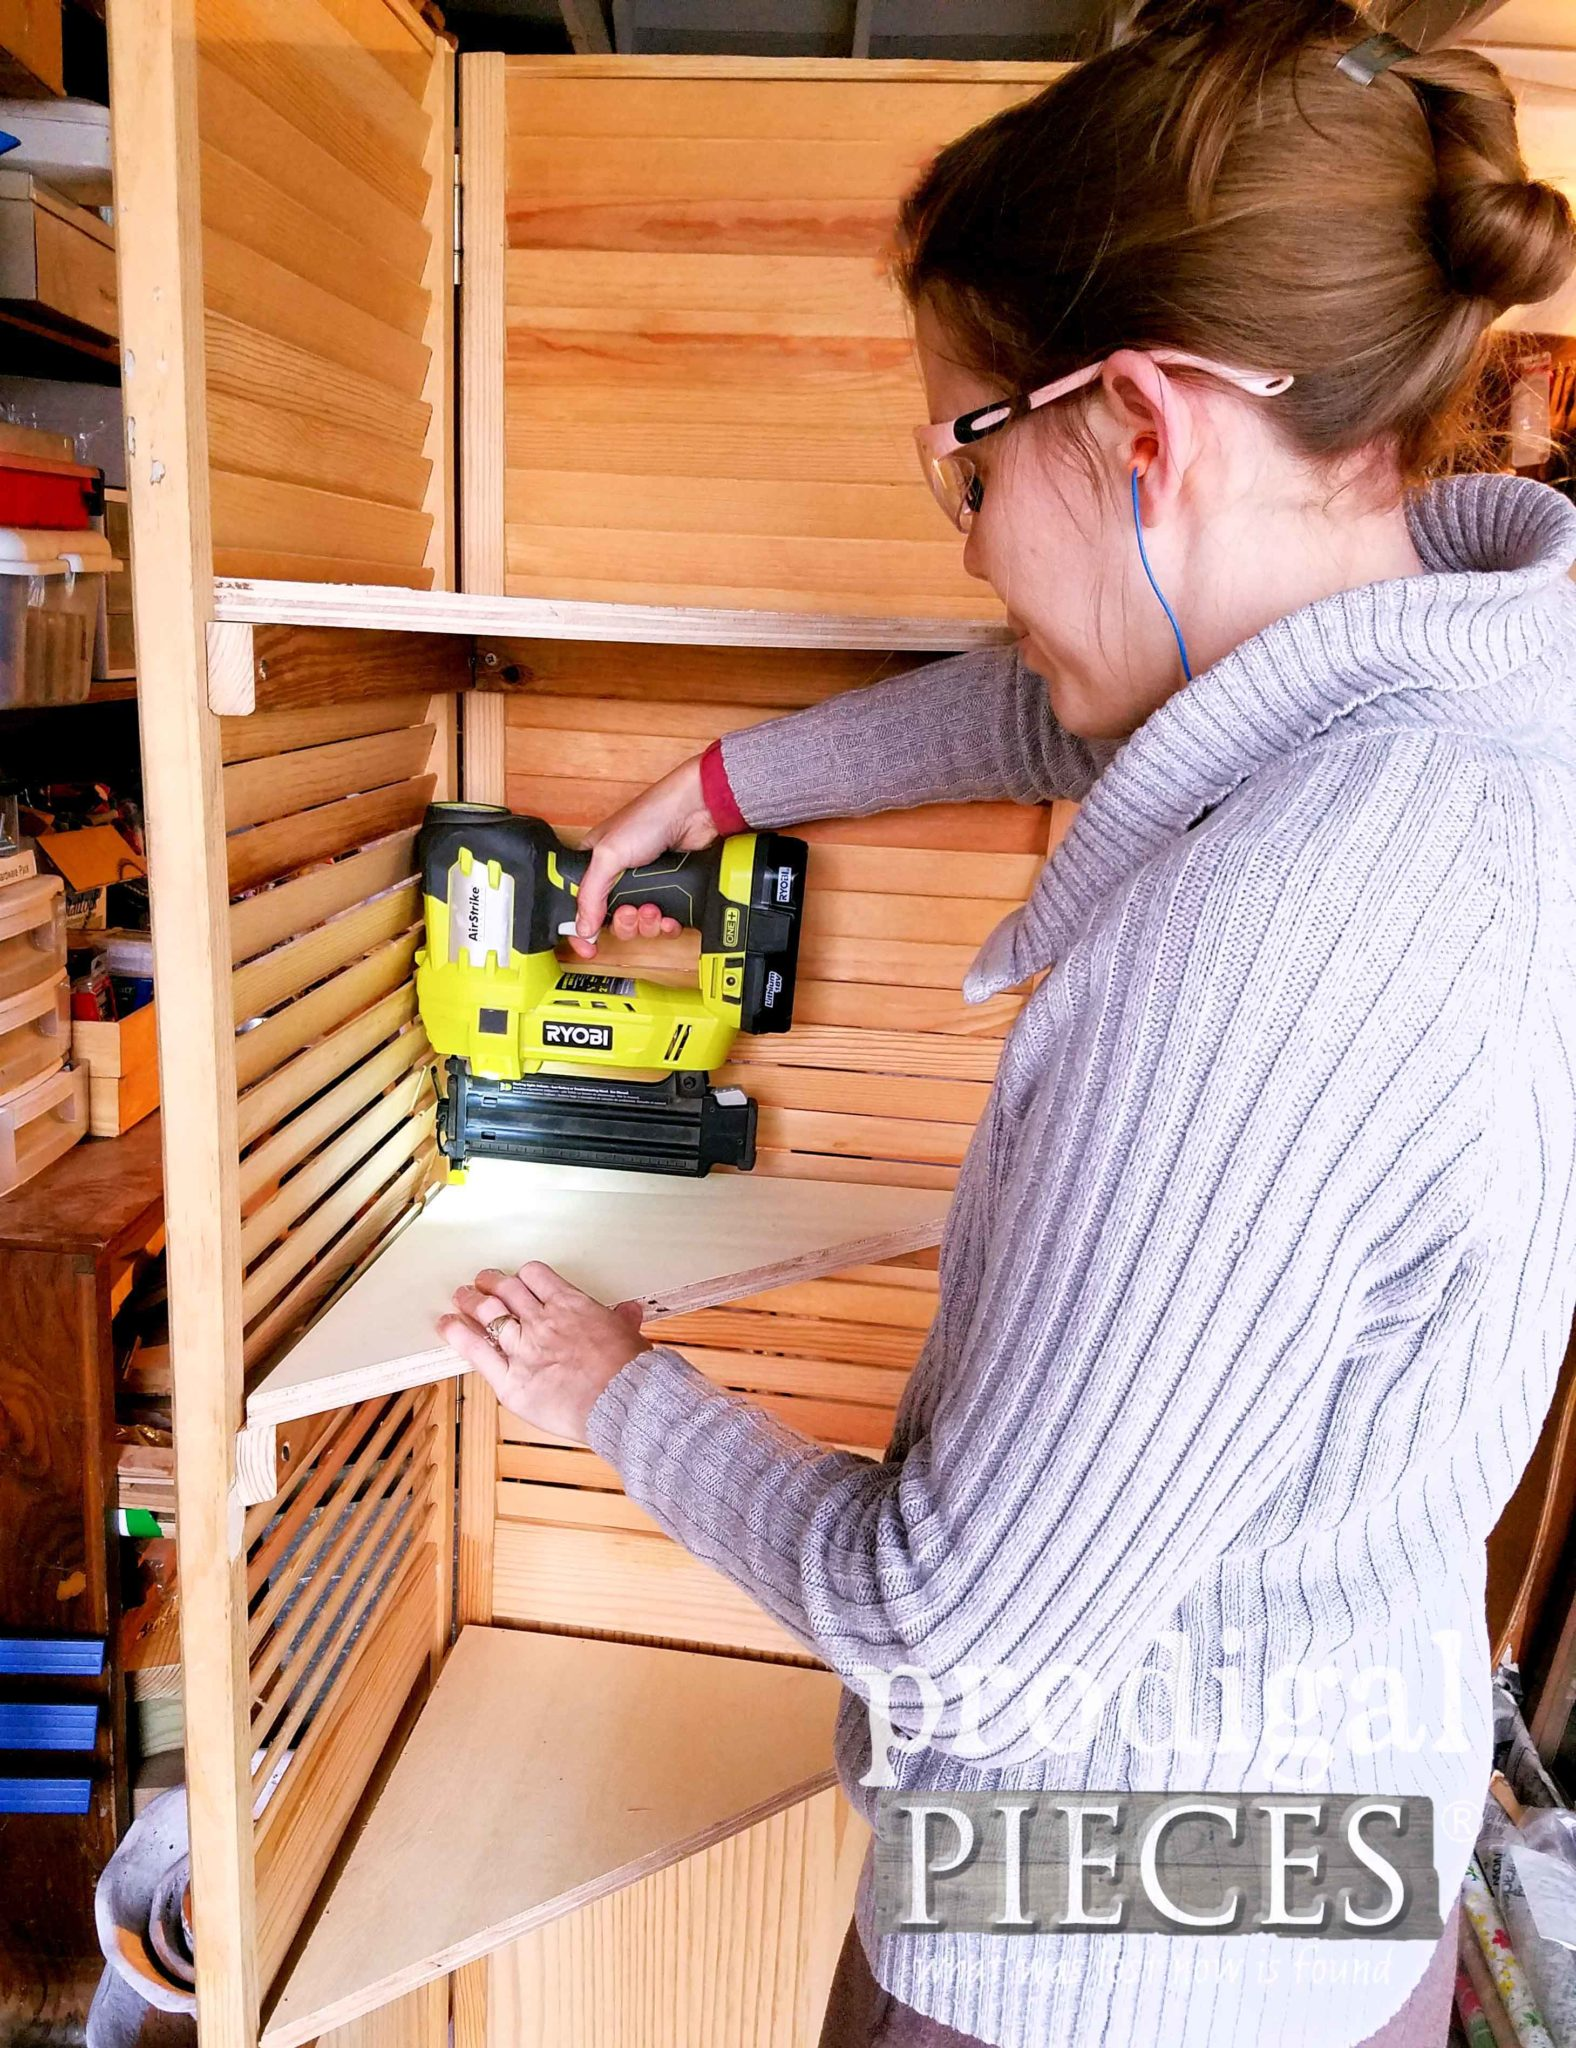 Ryobi Nailer to Add Corner Shelves to DIY Corner Shelf by Larissa of Prodigal Pieces | prodigalpieces.com